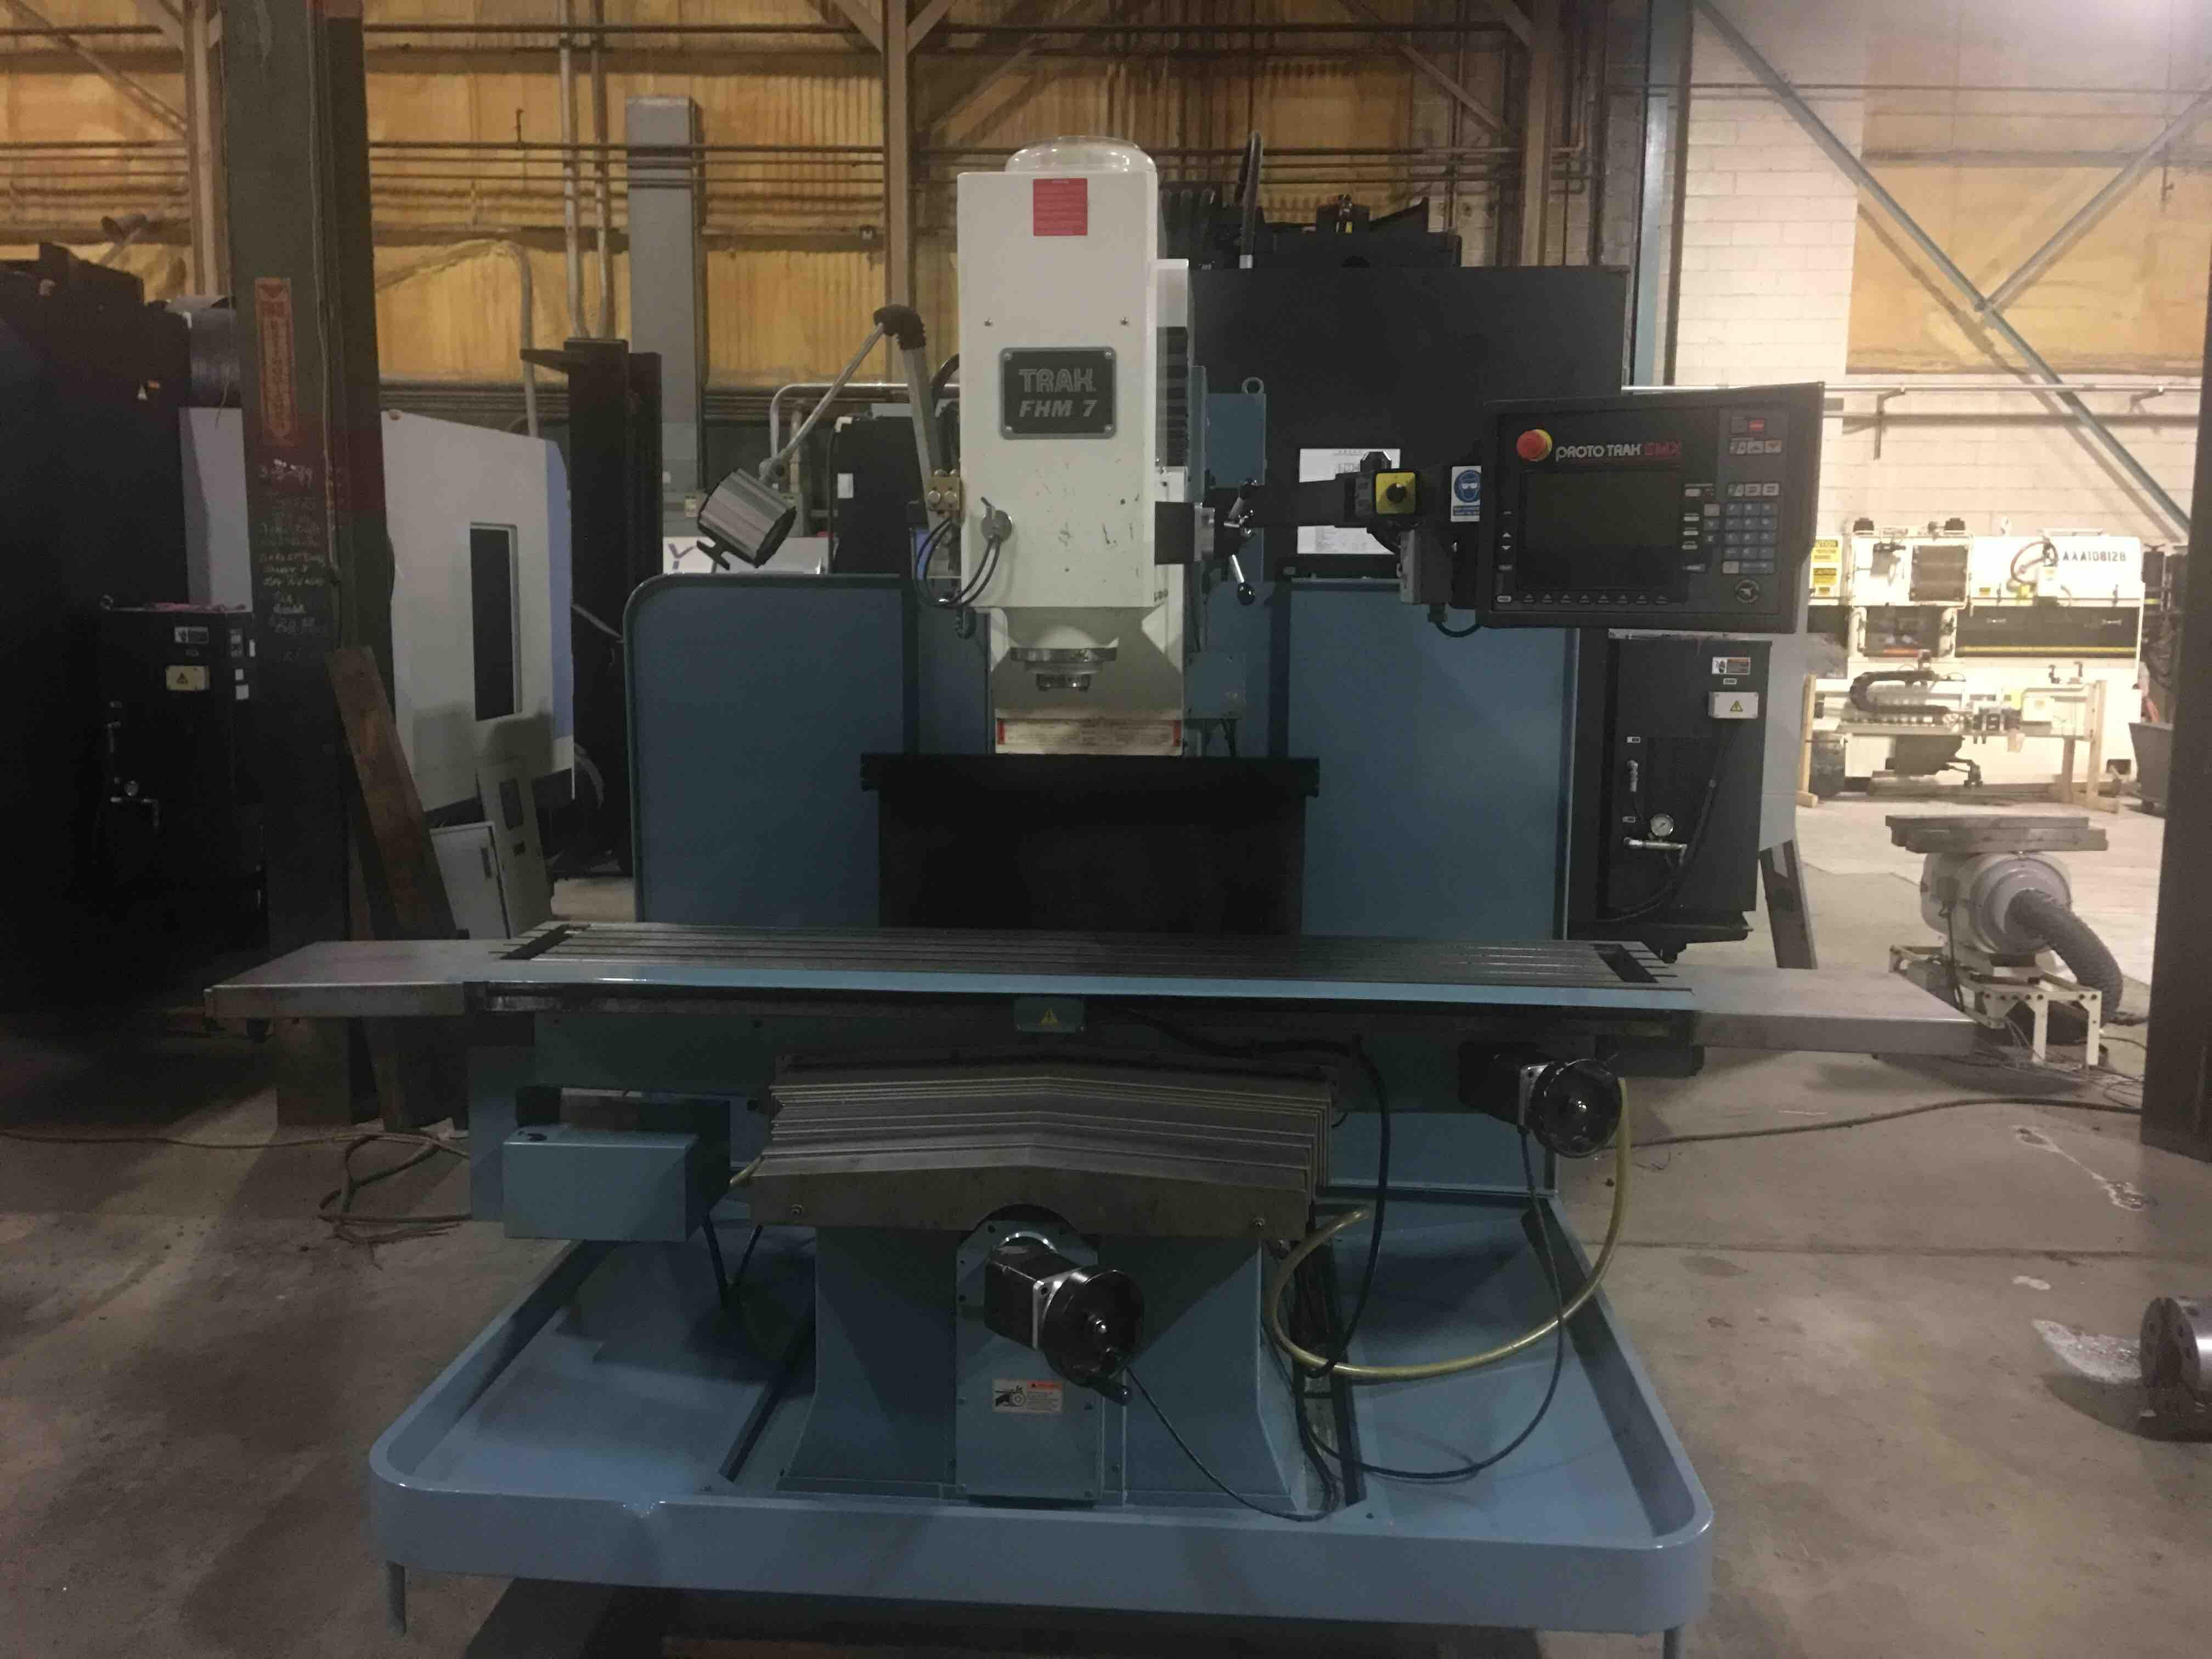 Southwestern Industries FHM7 CNC Bed Mill, SMX Control, 60